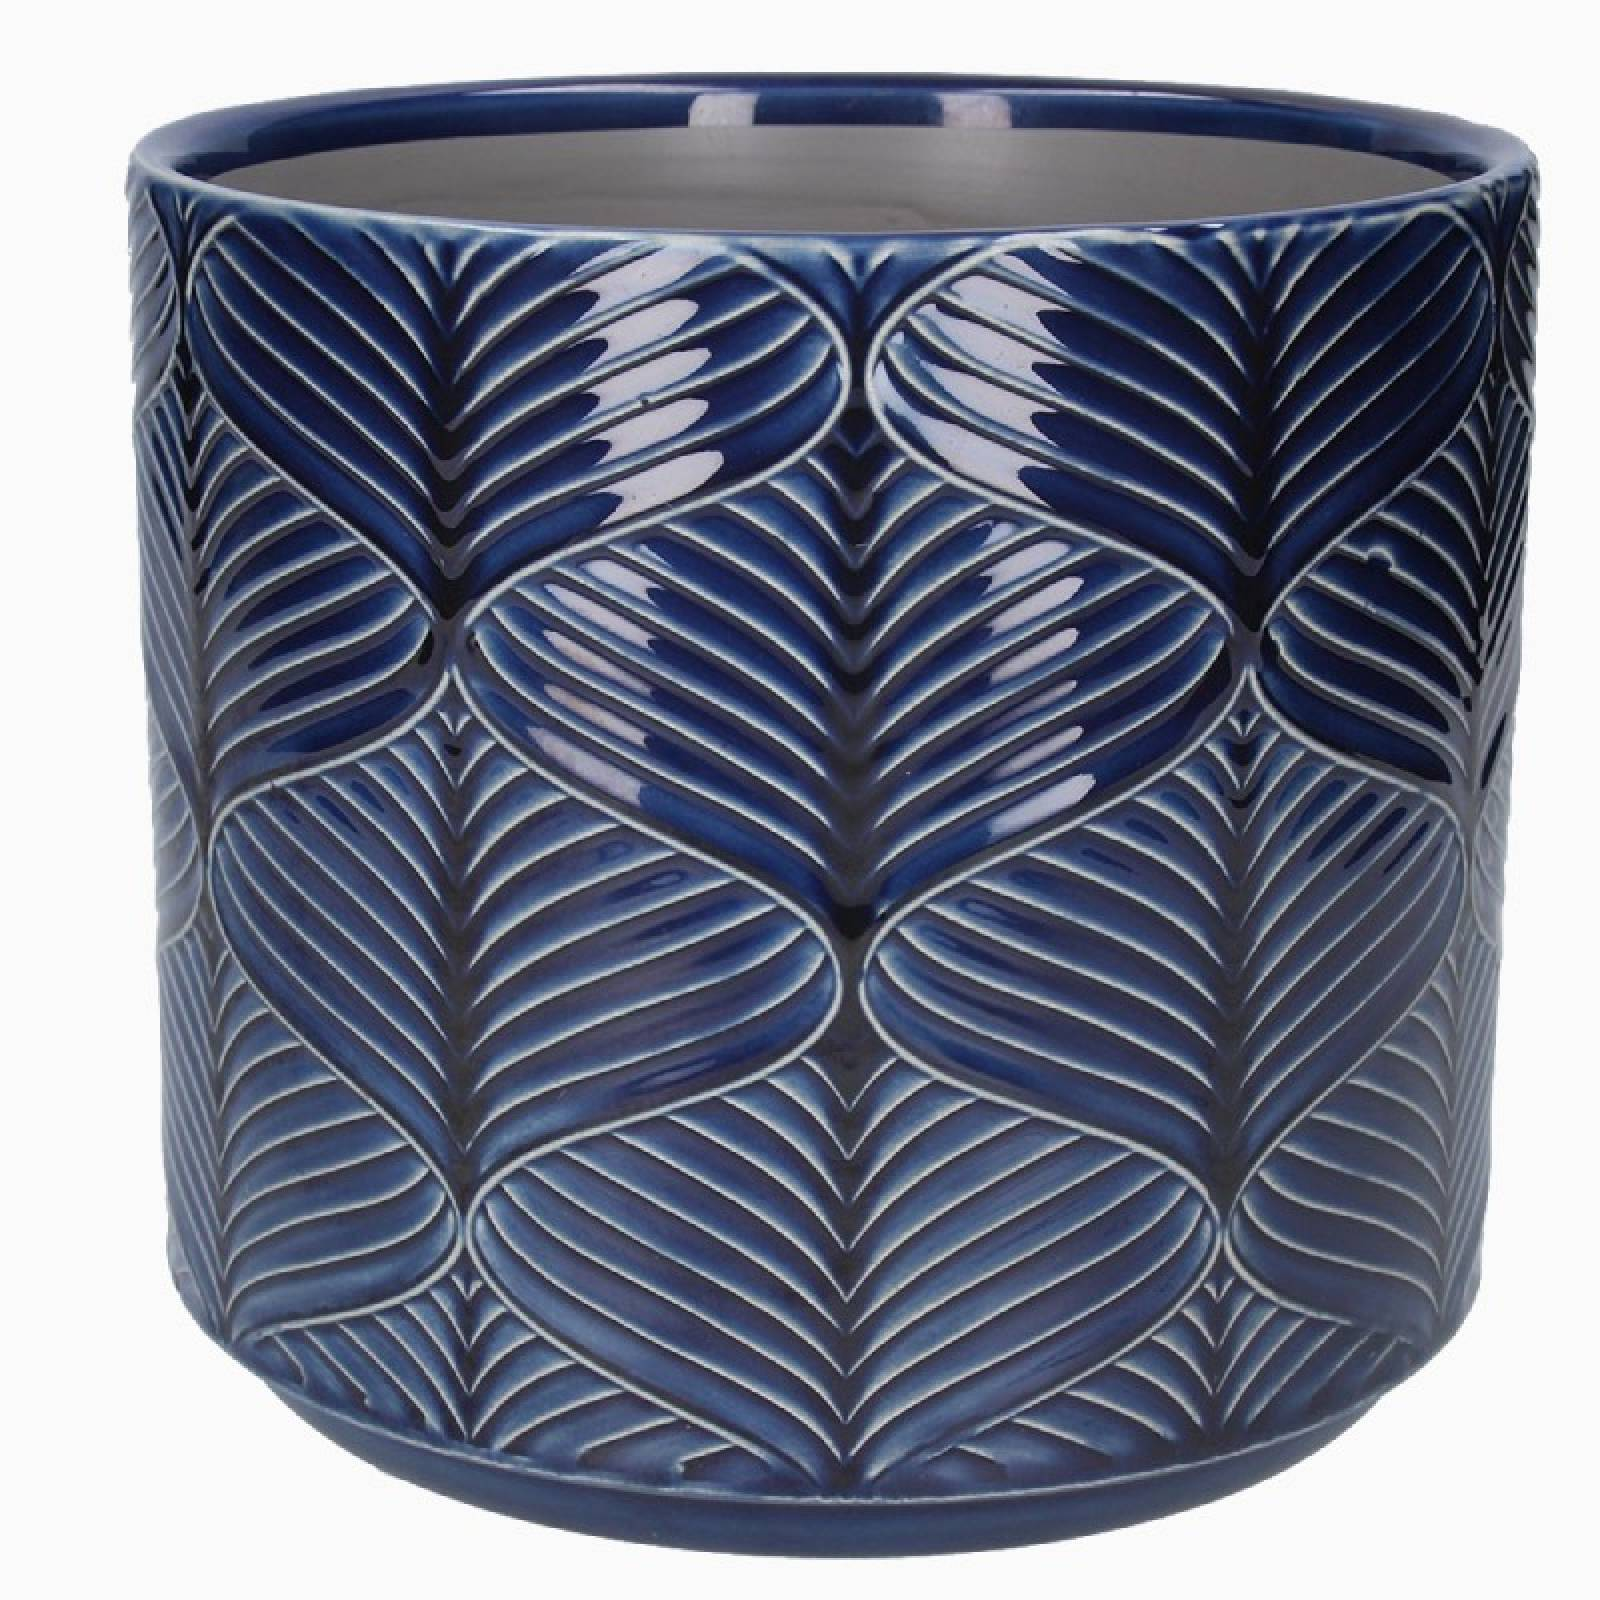 Large Wavy Ceramic Flower Pot Cover In Navy